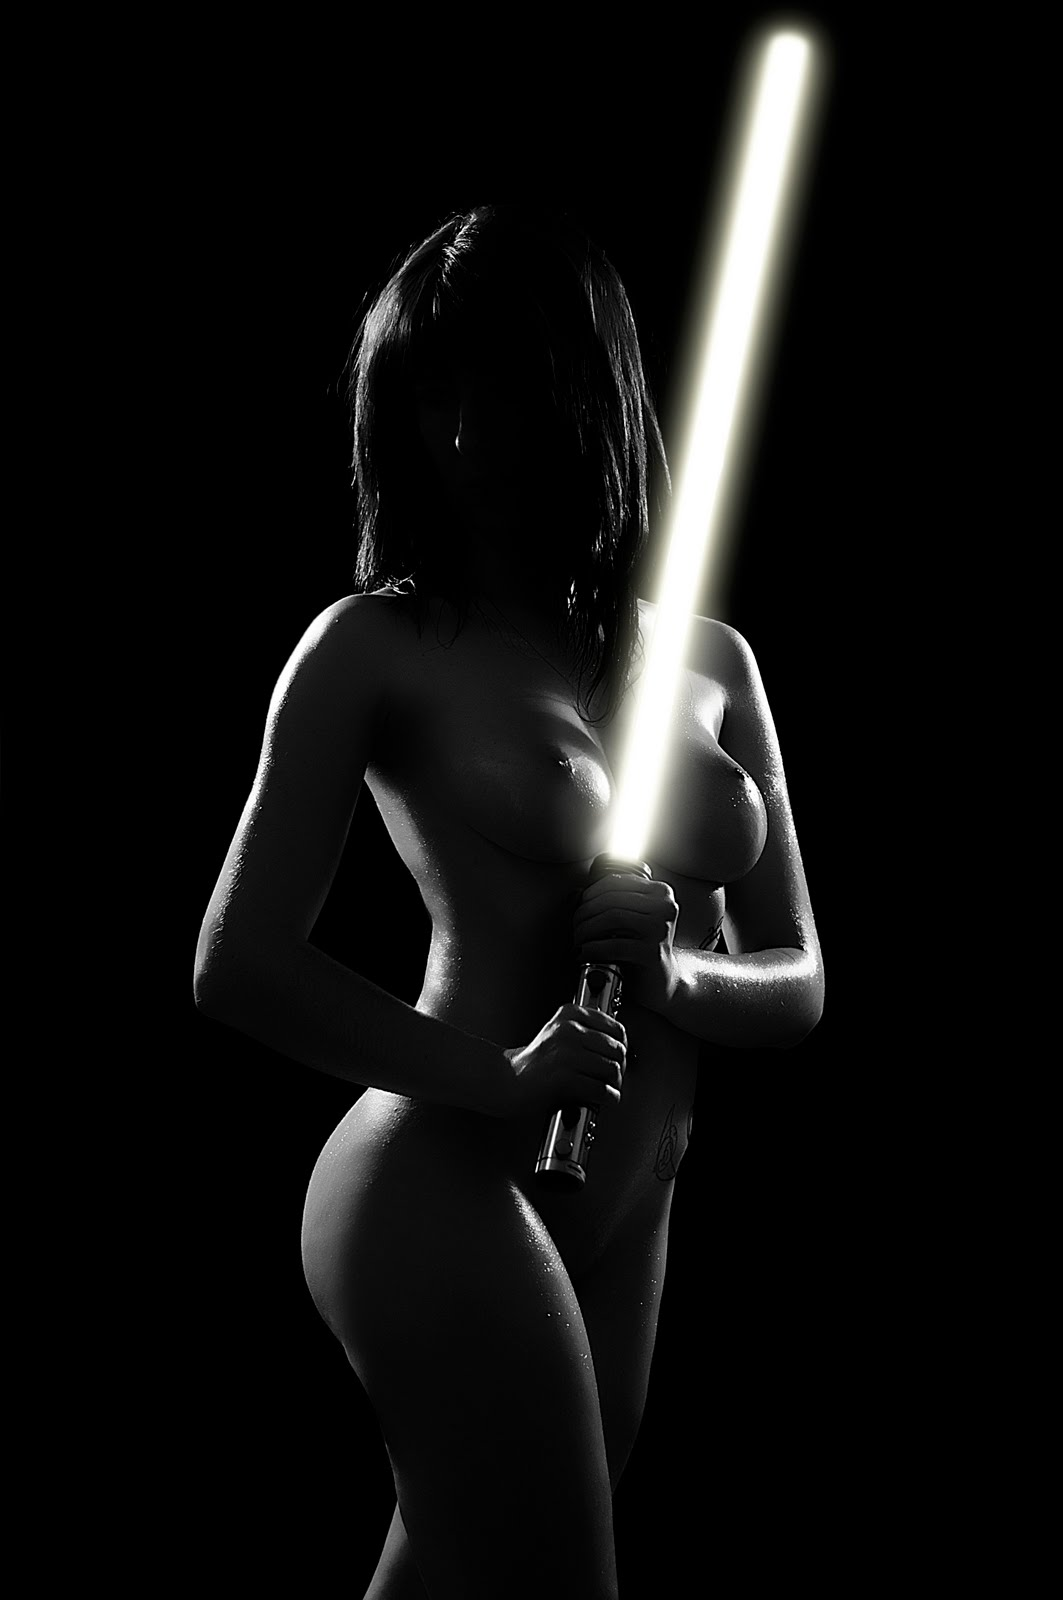 Girls from star wars naked pictures nude galleries